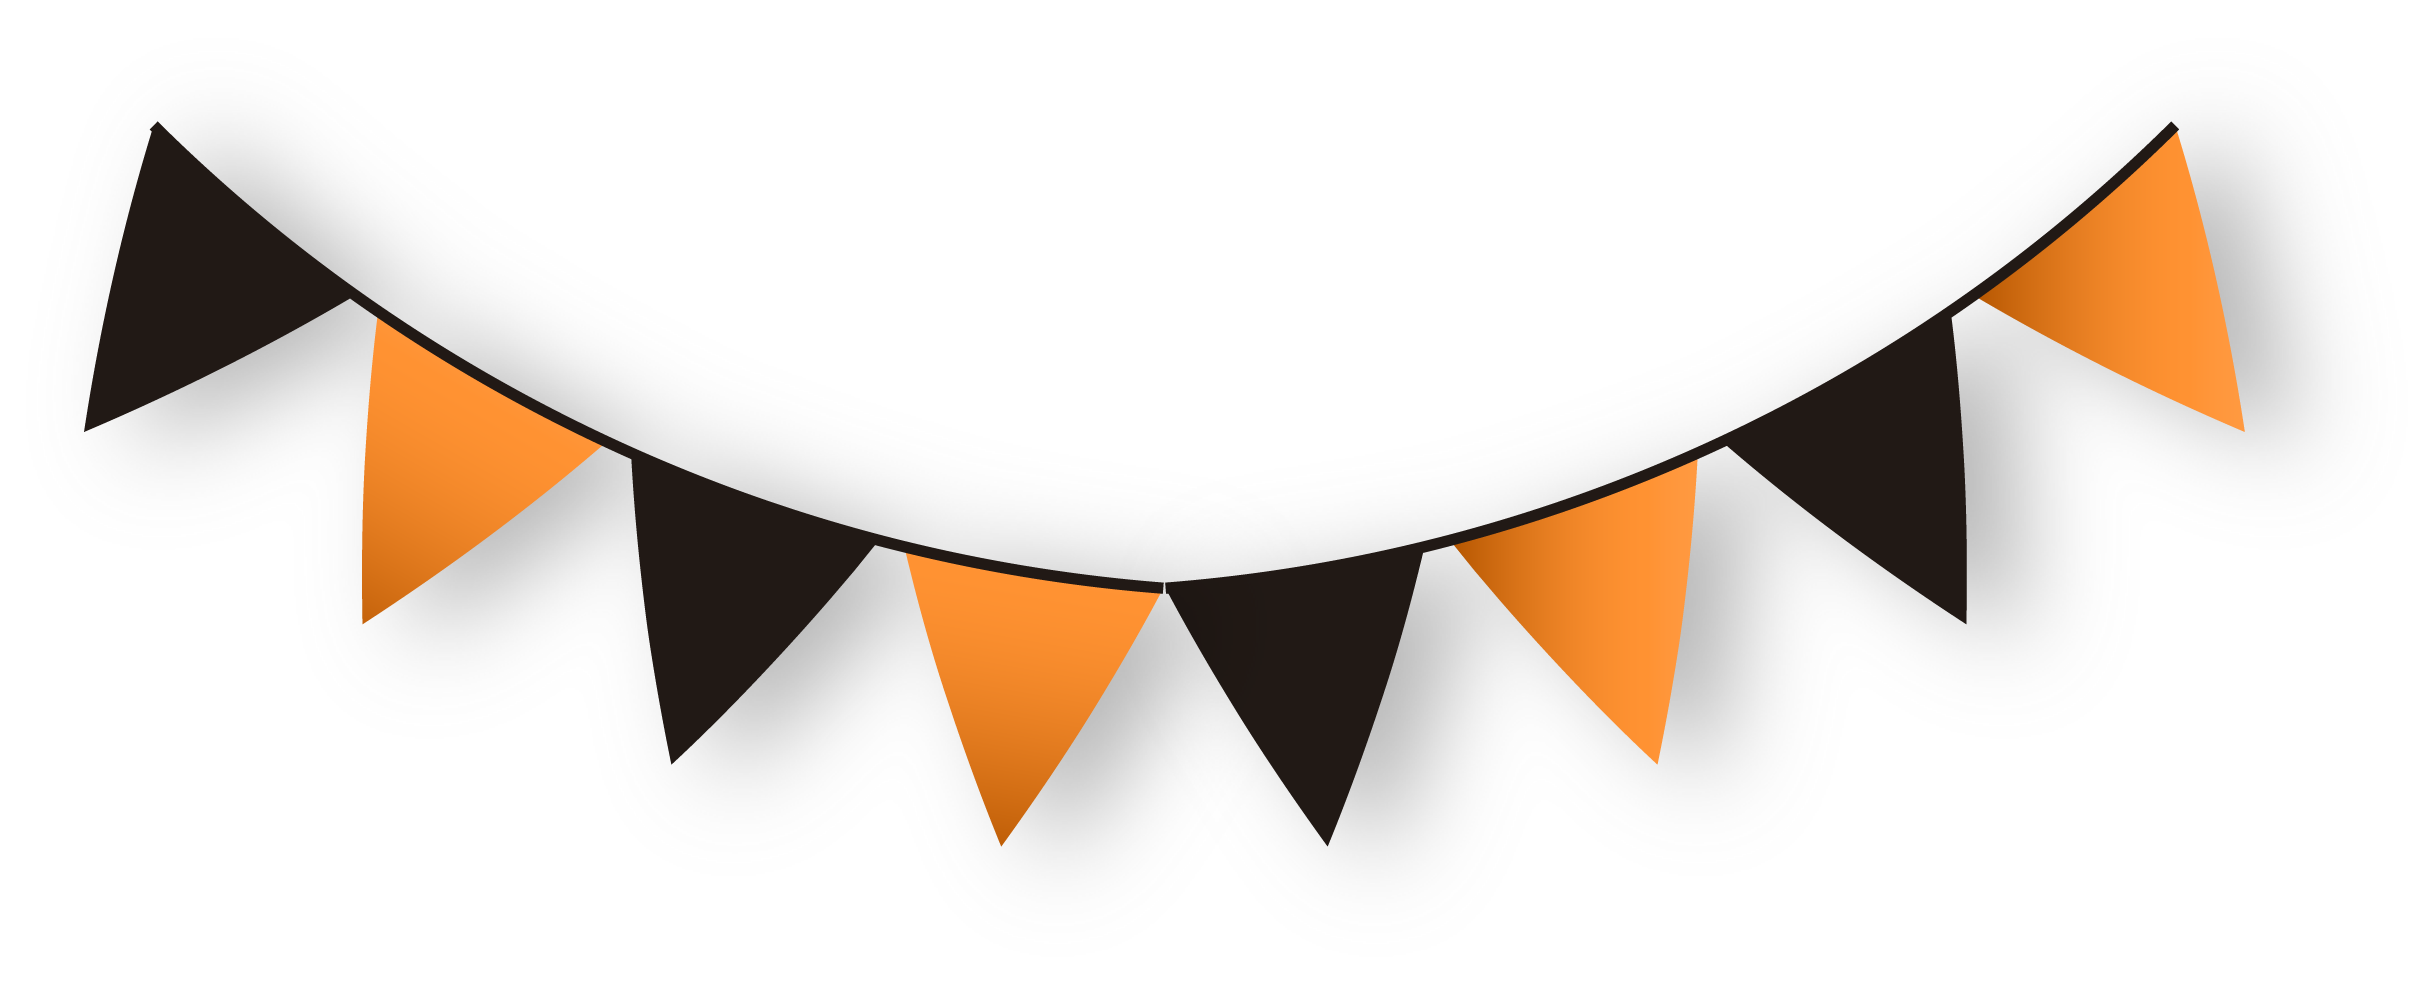 Creative-halloween-balloon-background 8.png